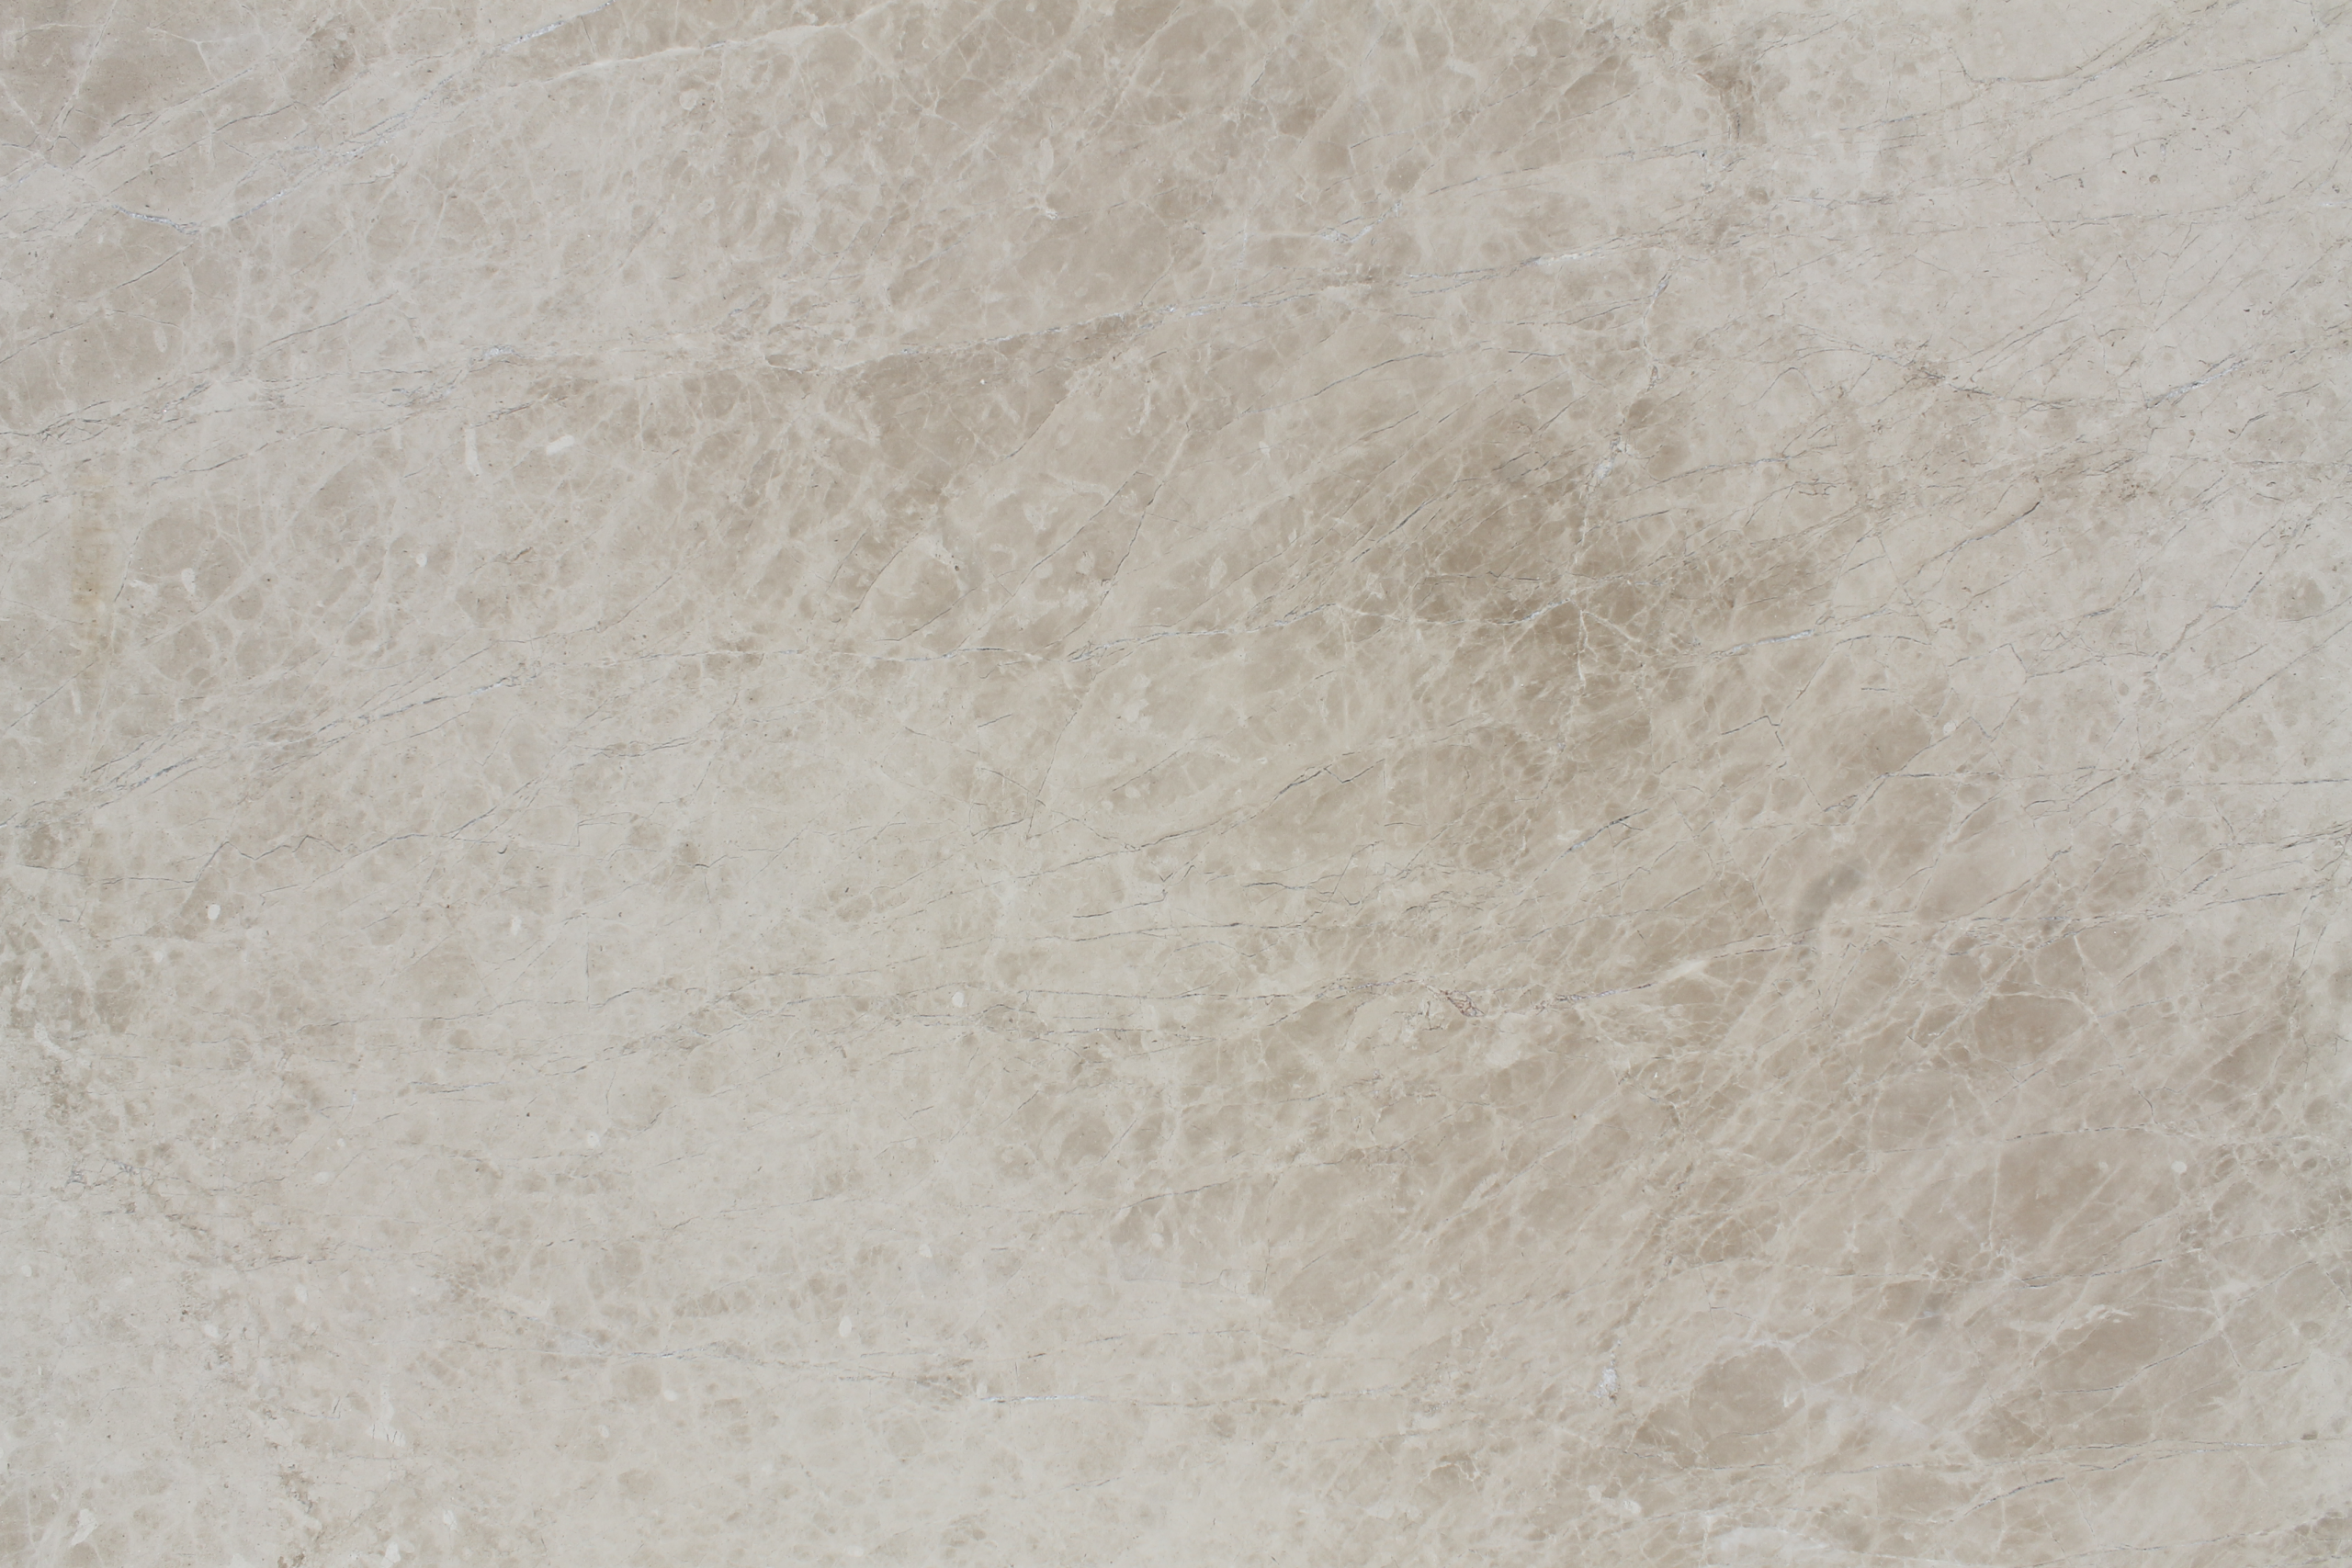 Close up picture of eastern cream honed slab in order for customers to get a better look at the stone